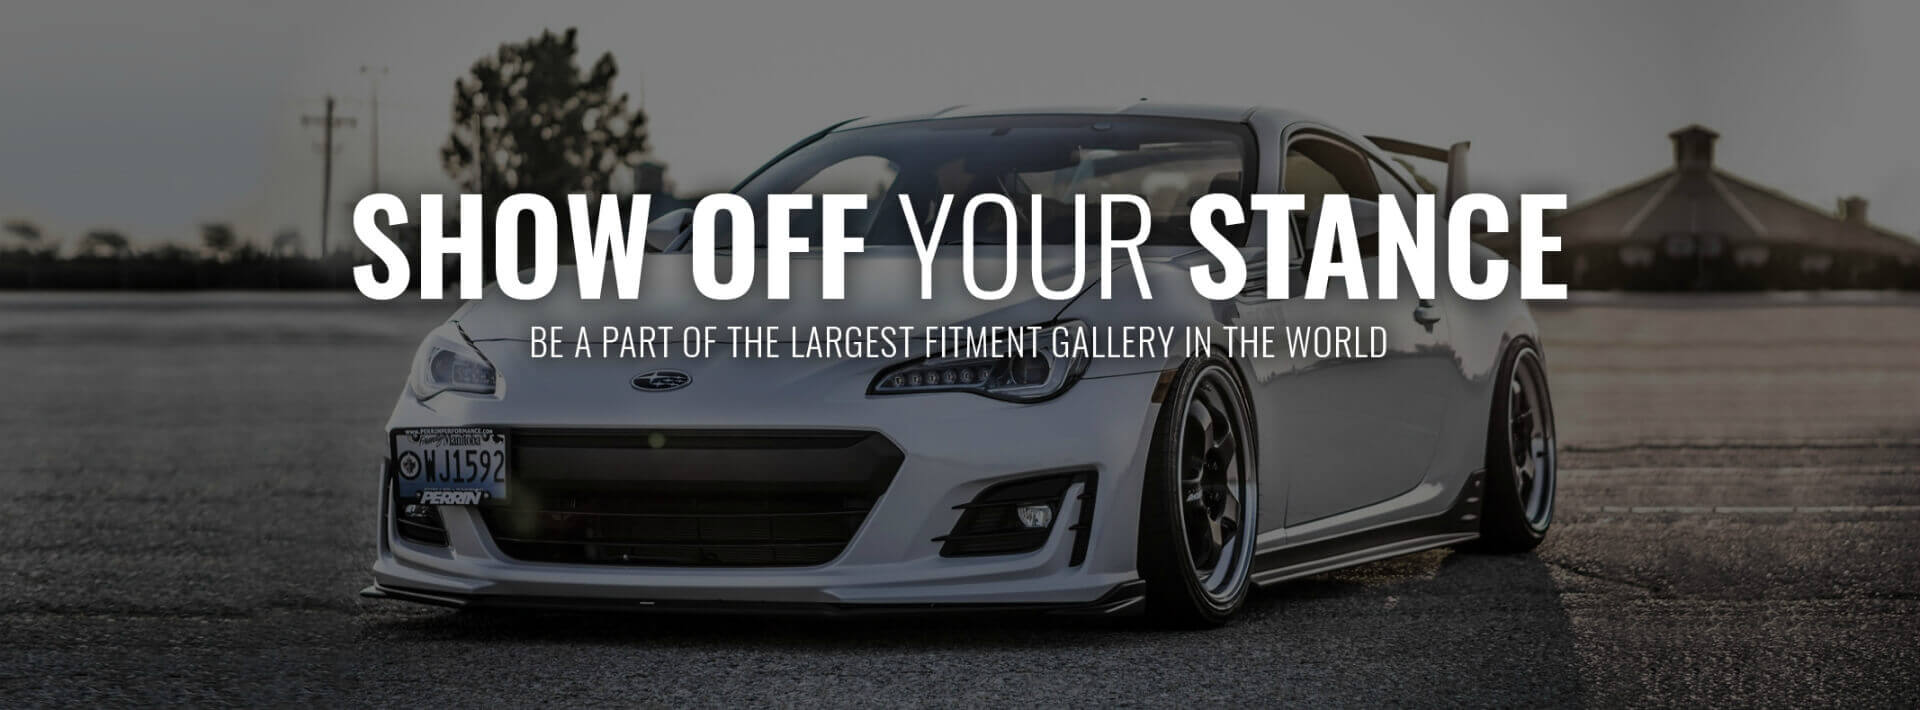 Fitment Industries | Show Off Your Stance, Gallery